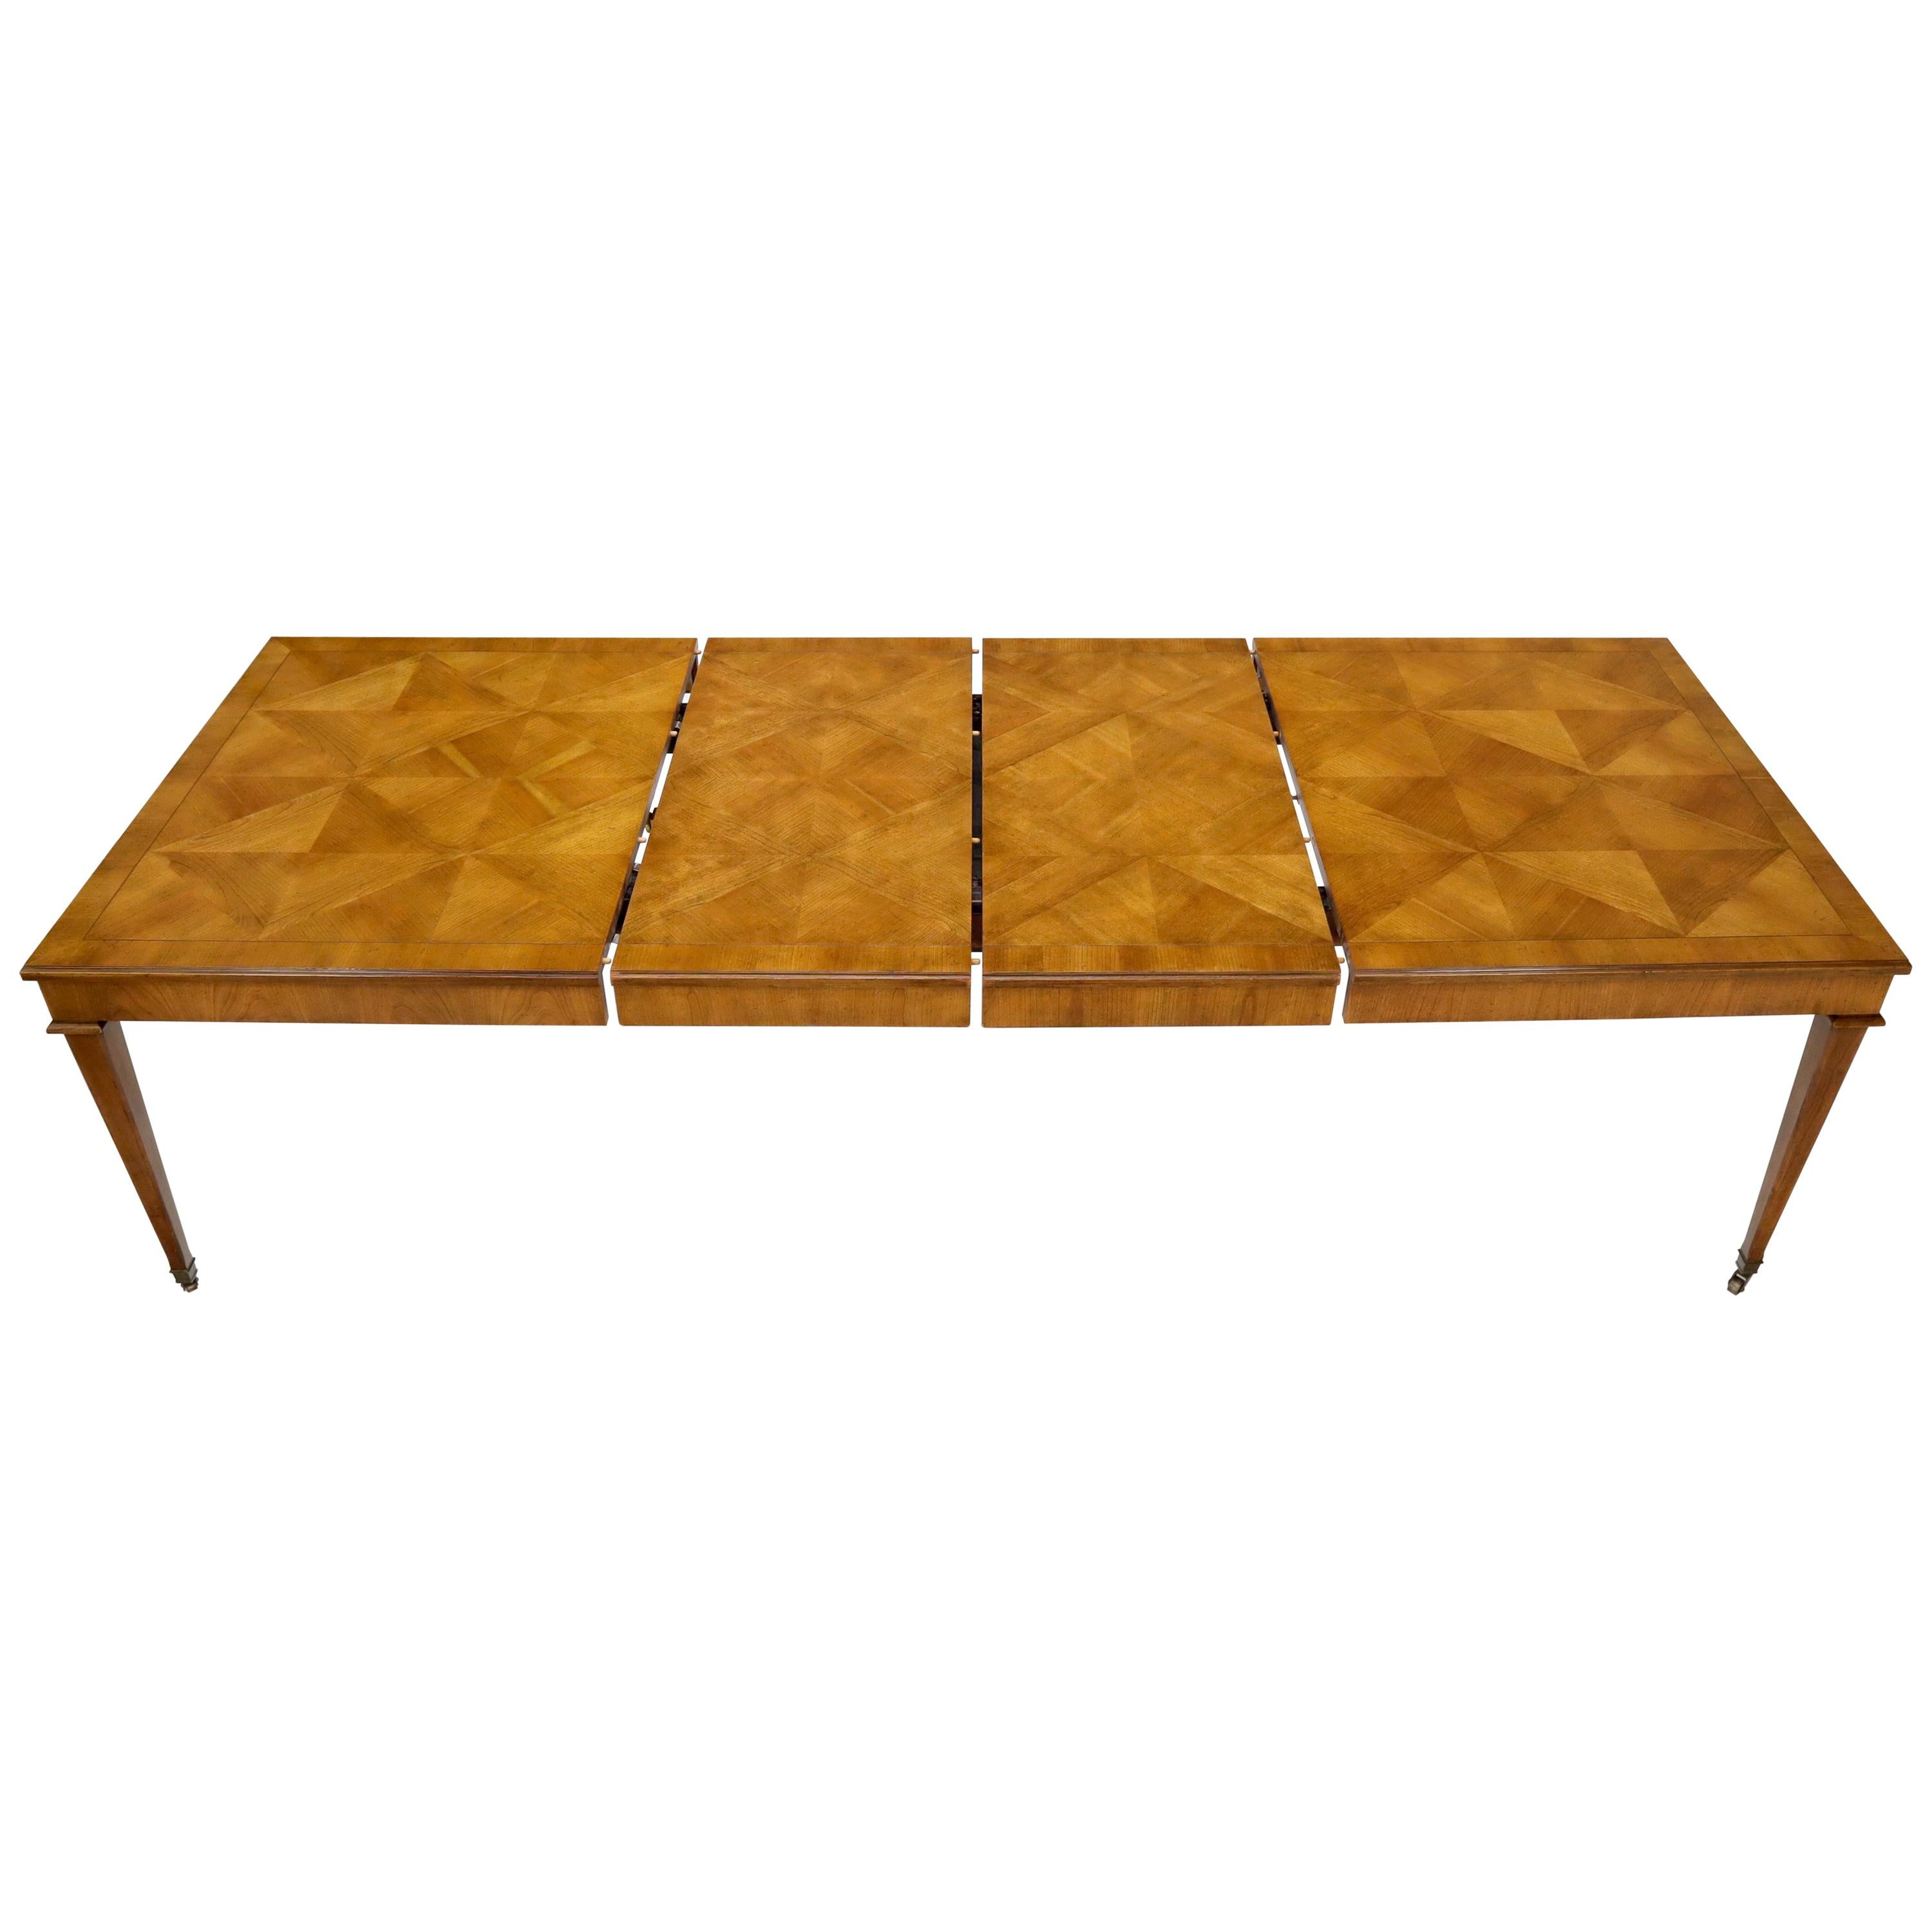 Baker Parquet Top Rectangle Dining Table with Two Extension Leaves Boards